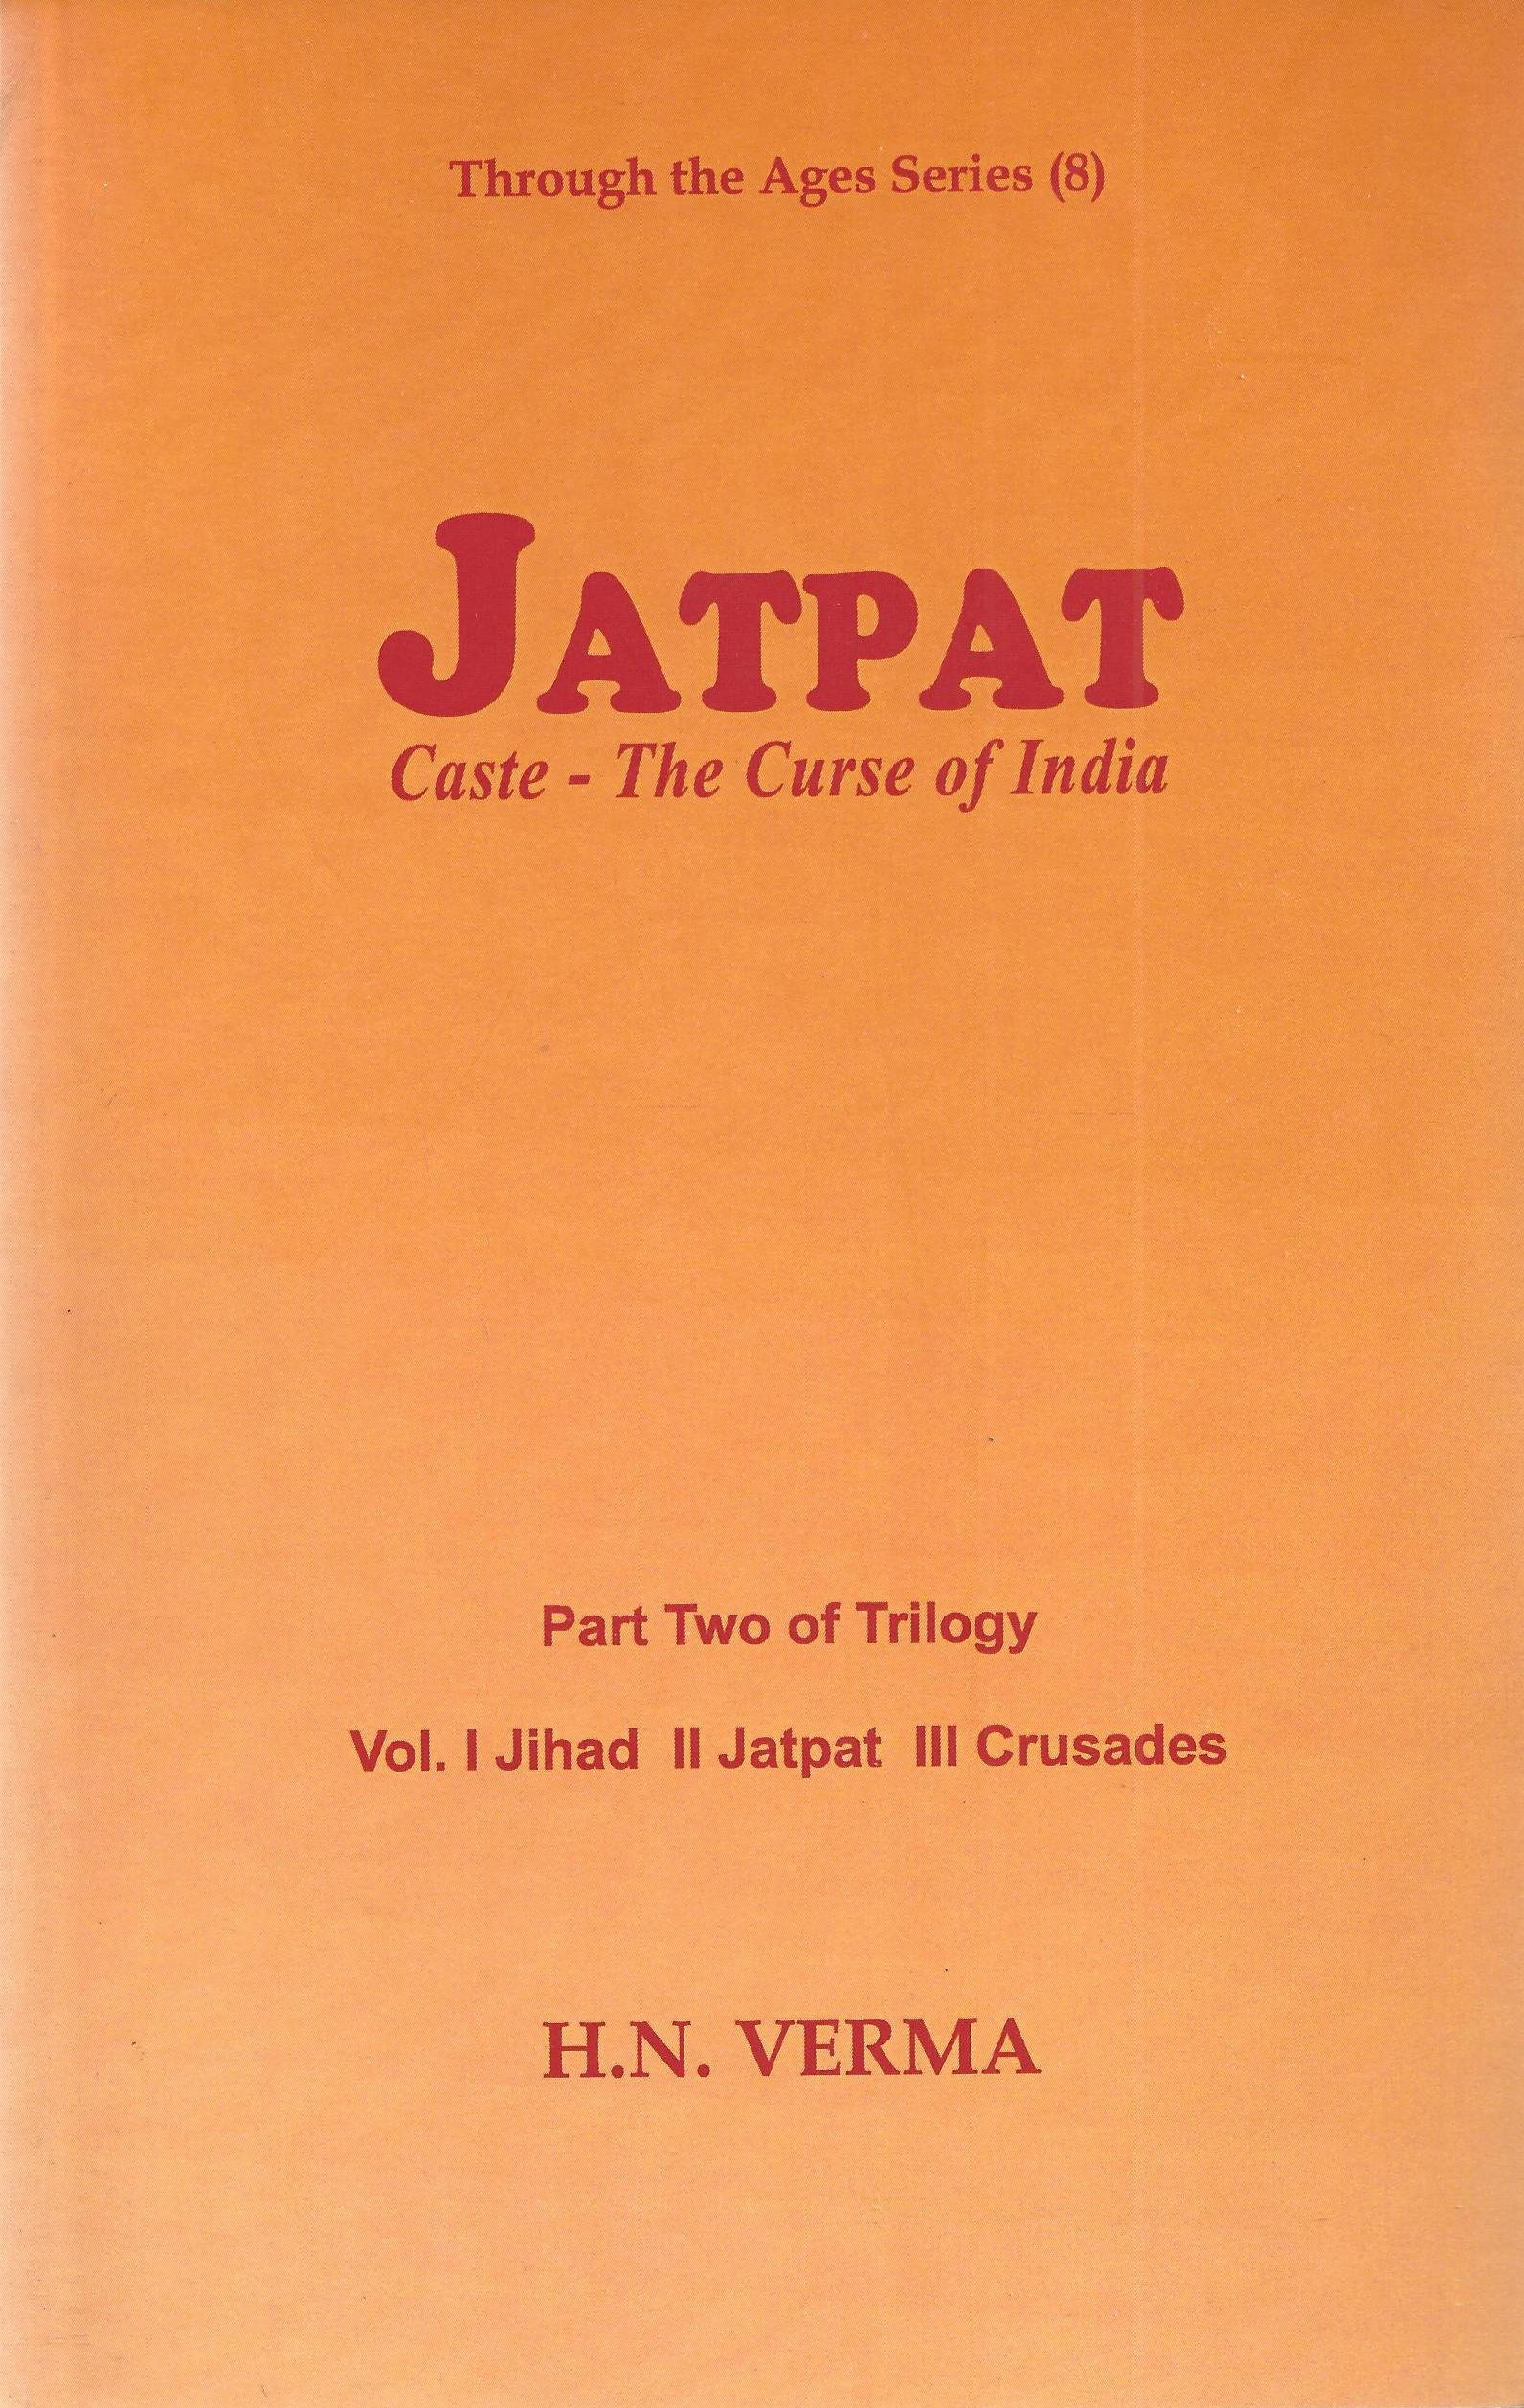 Jatpat : caste, the curse of India (Part two of a trilogy